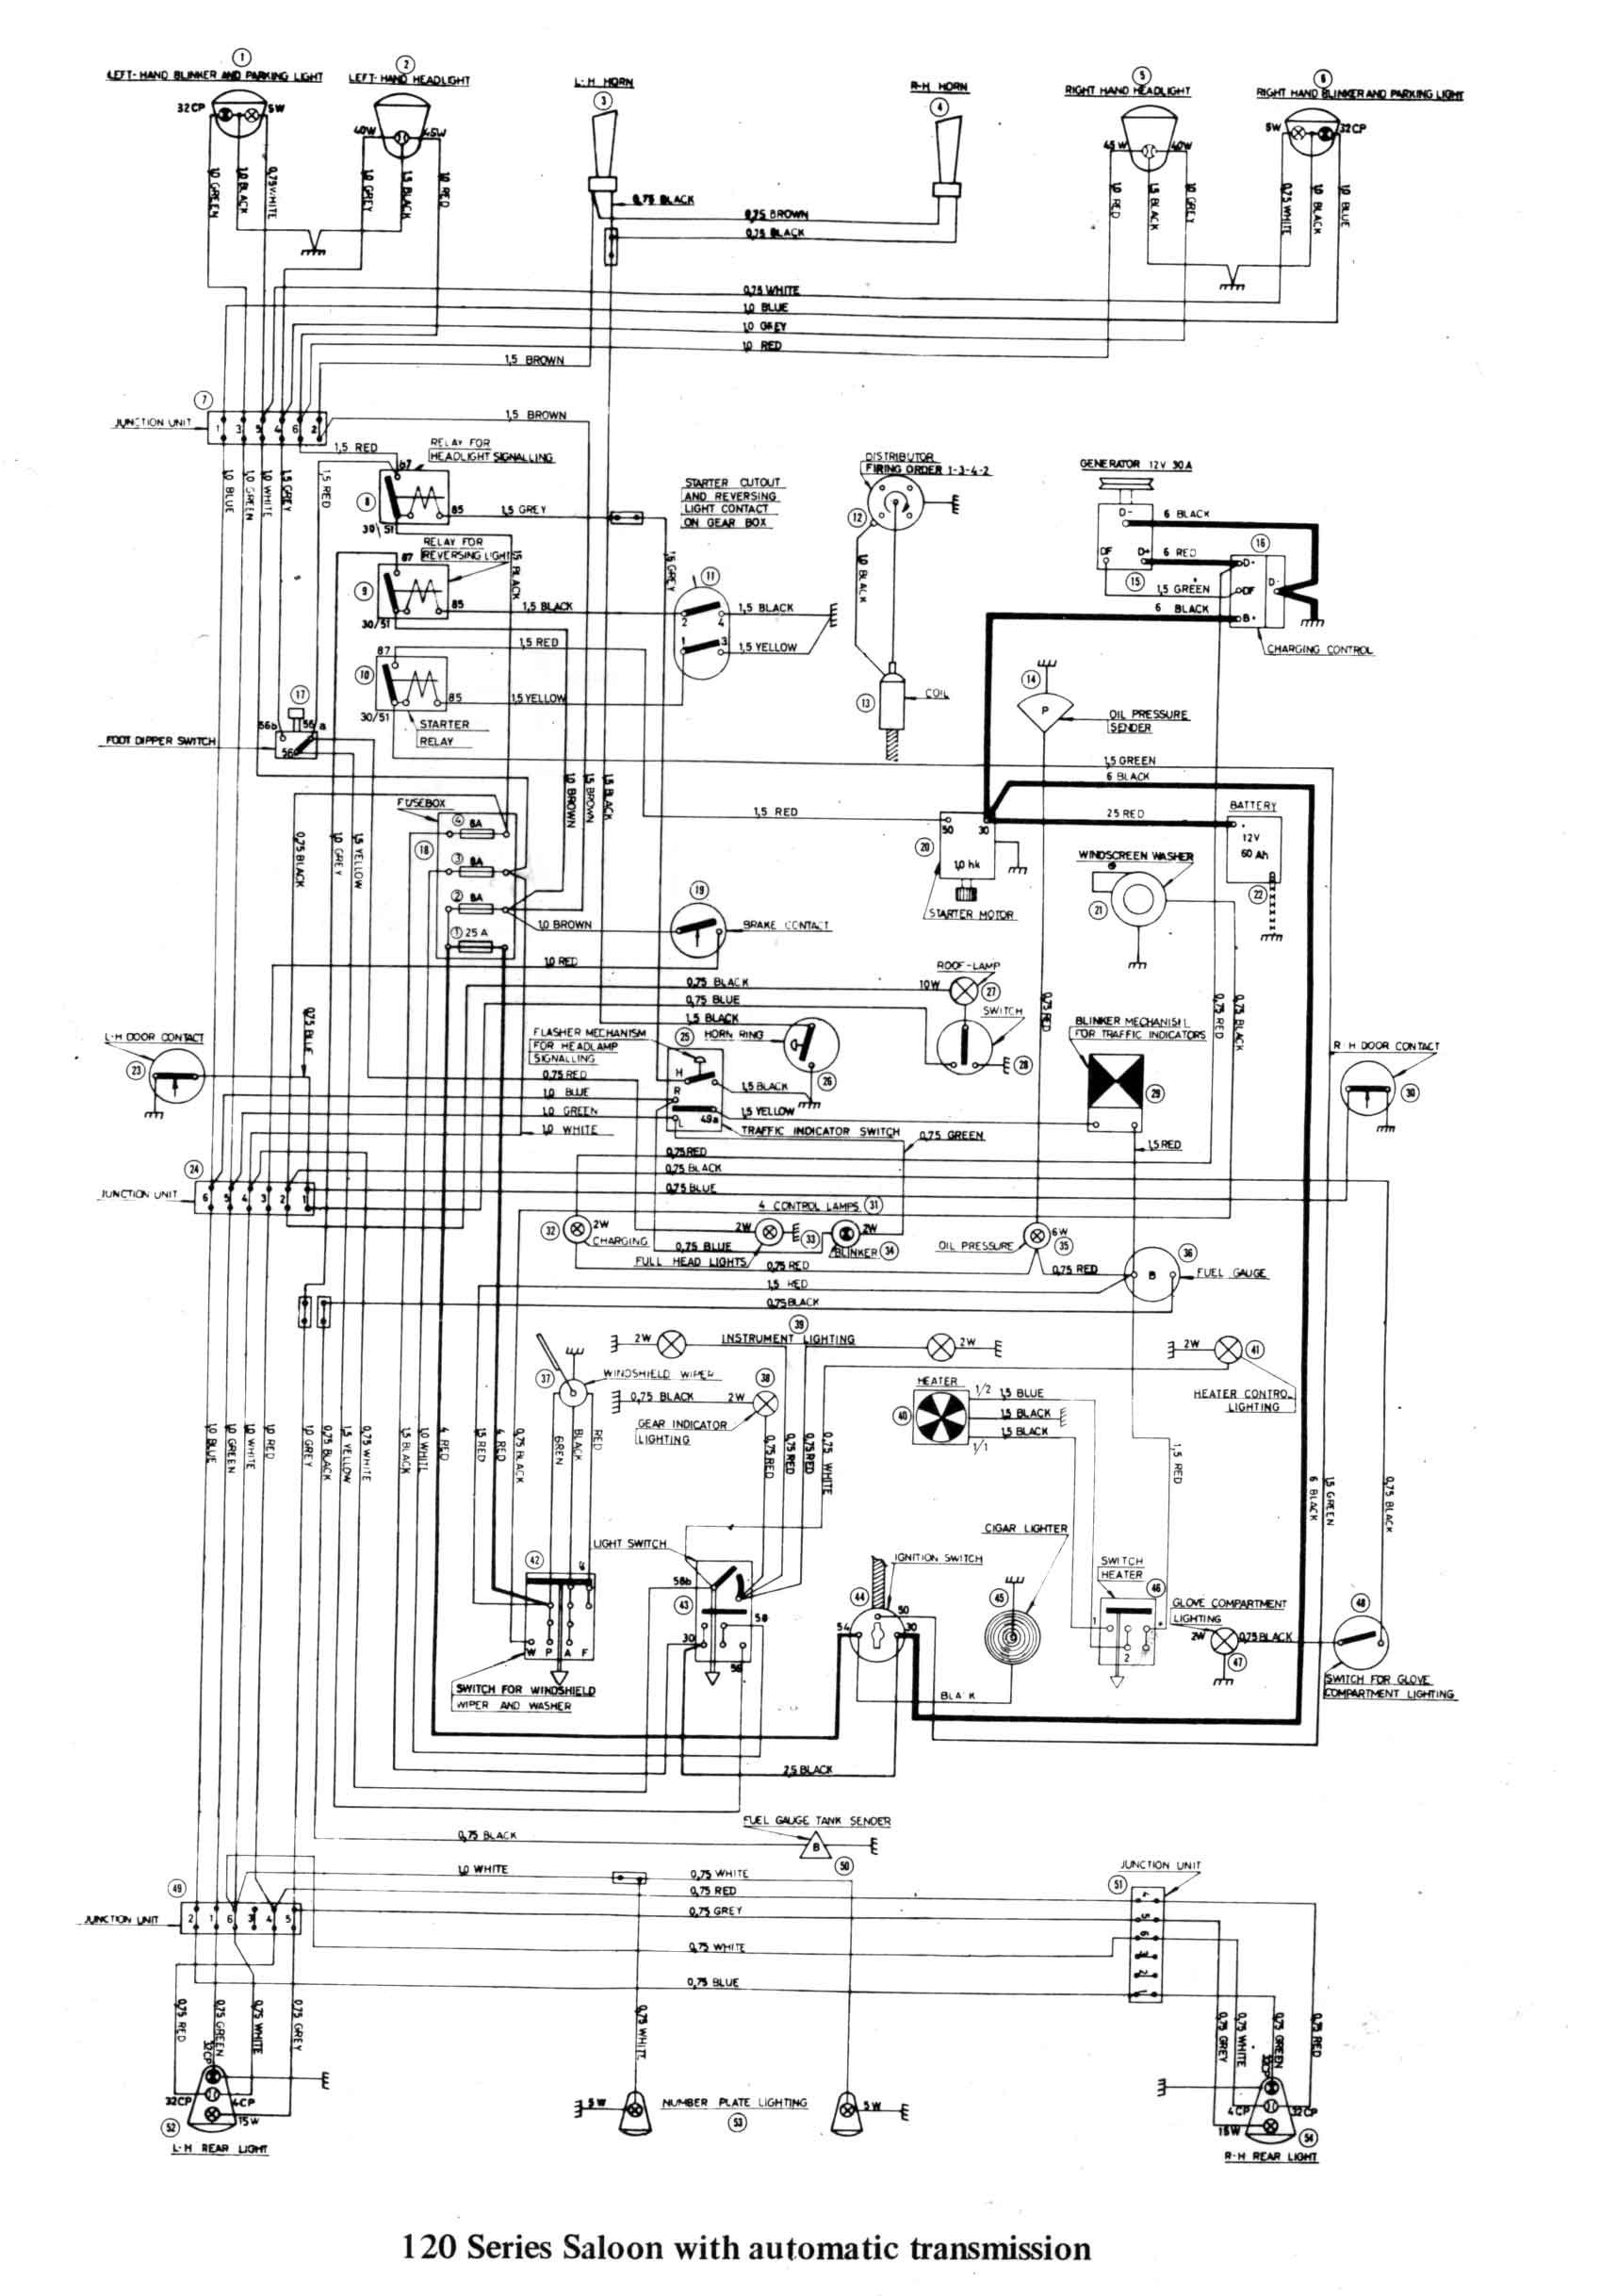 Car Electrical Wiring Diagram Unique Starter Wiring Diagram Diagram Of Car Electrical Wiring Diagram Awesome Ignition Wiring Diagram Diagram